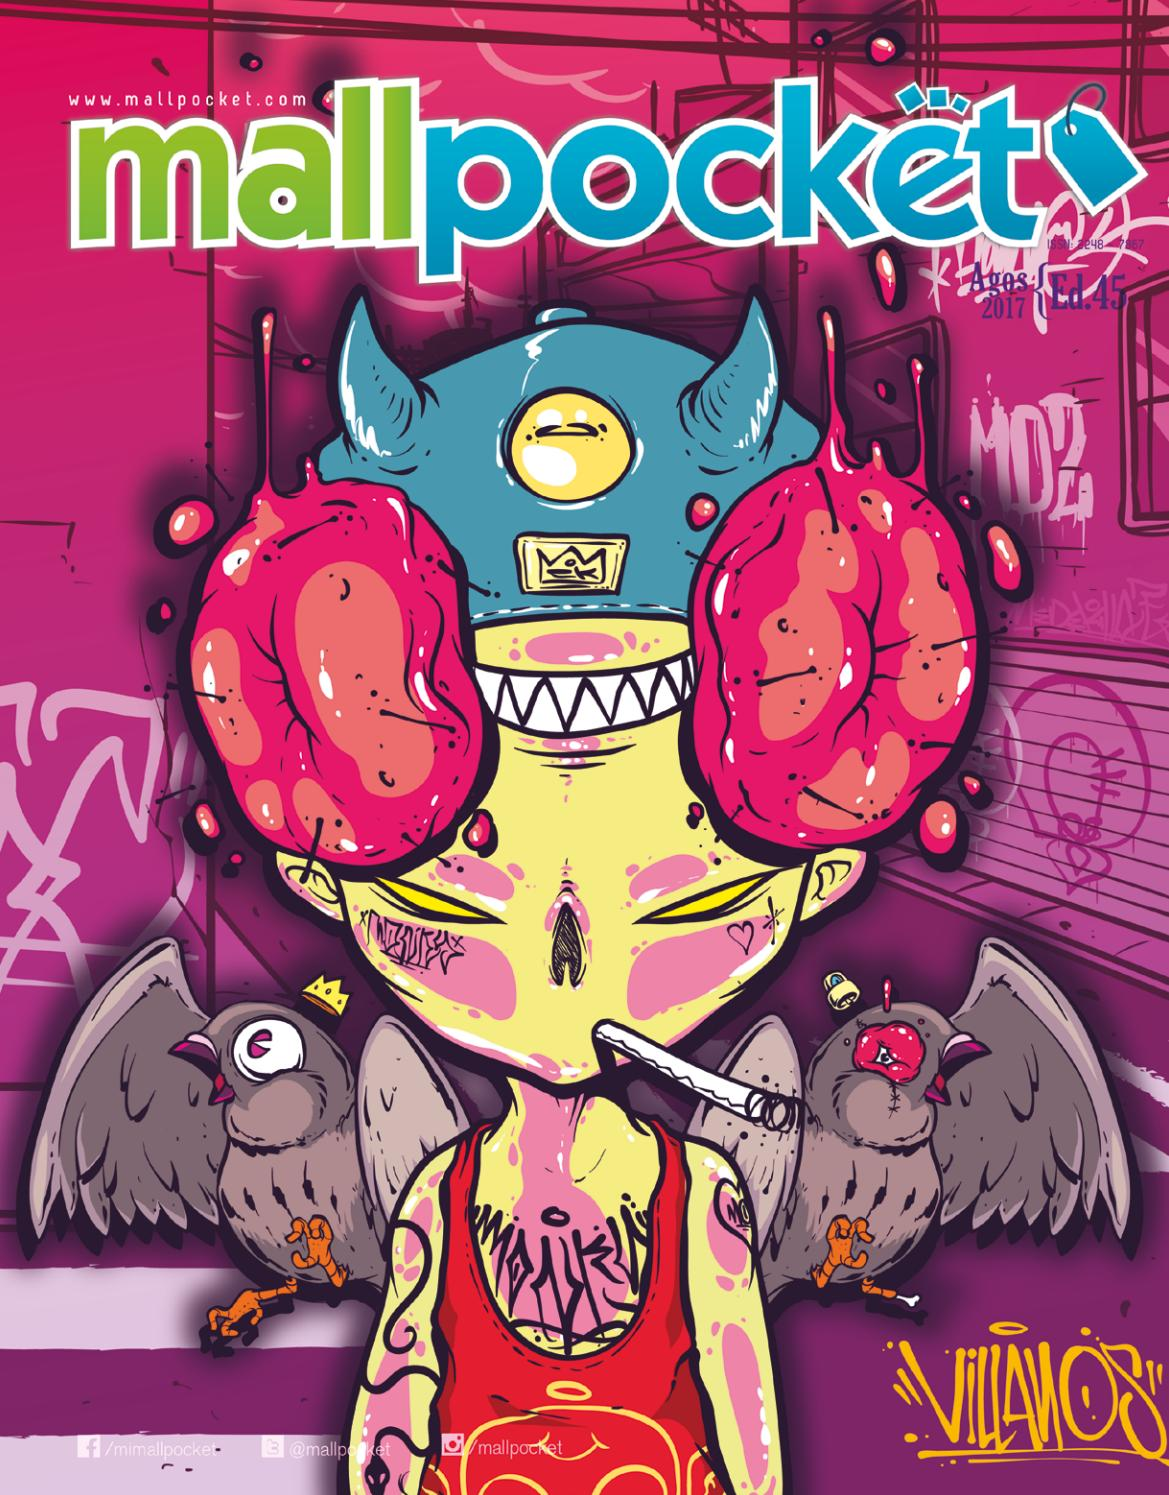 Mallpocket Ed. 45 / Villanos by Mallpocket Revista - issuu